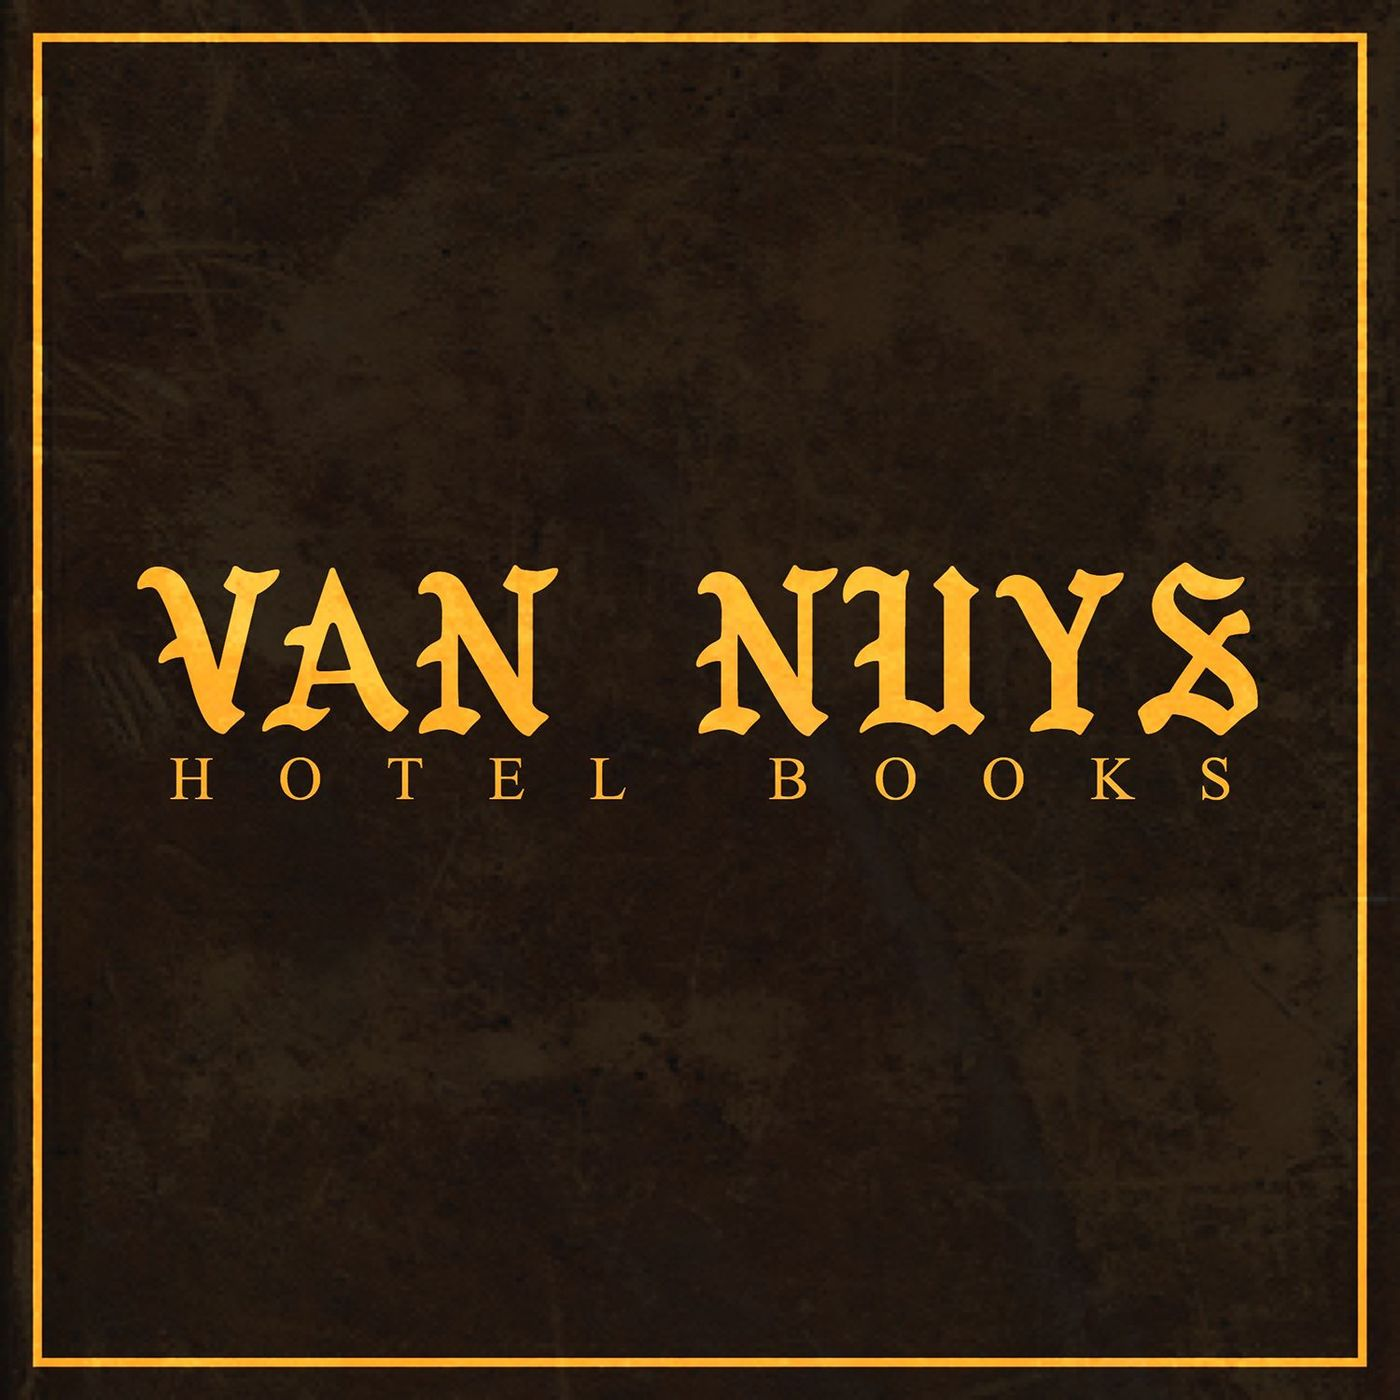 Hotel Books - Van Nuys [single] (2016)